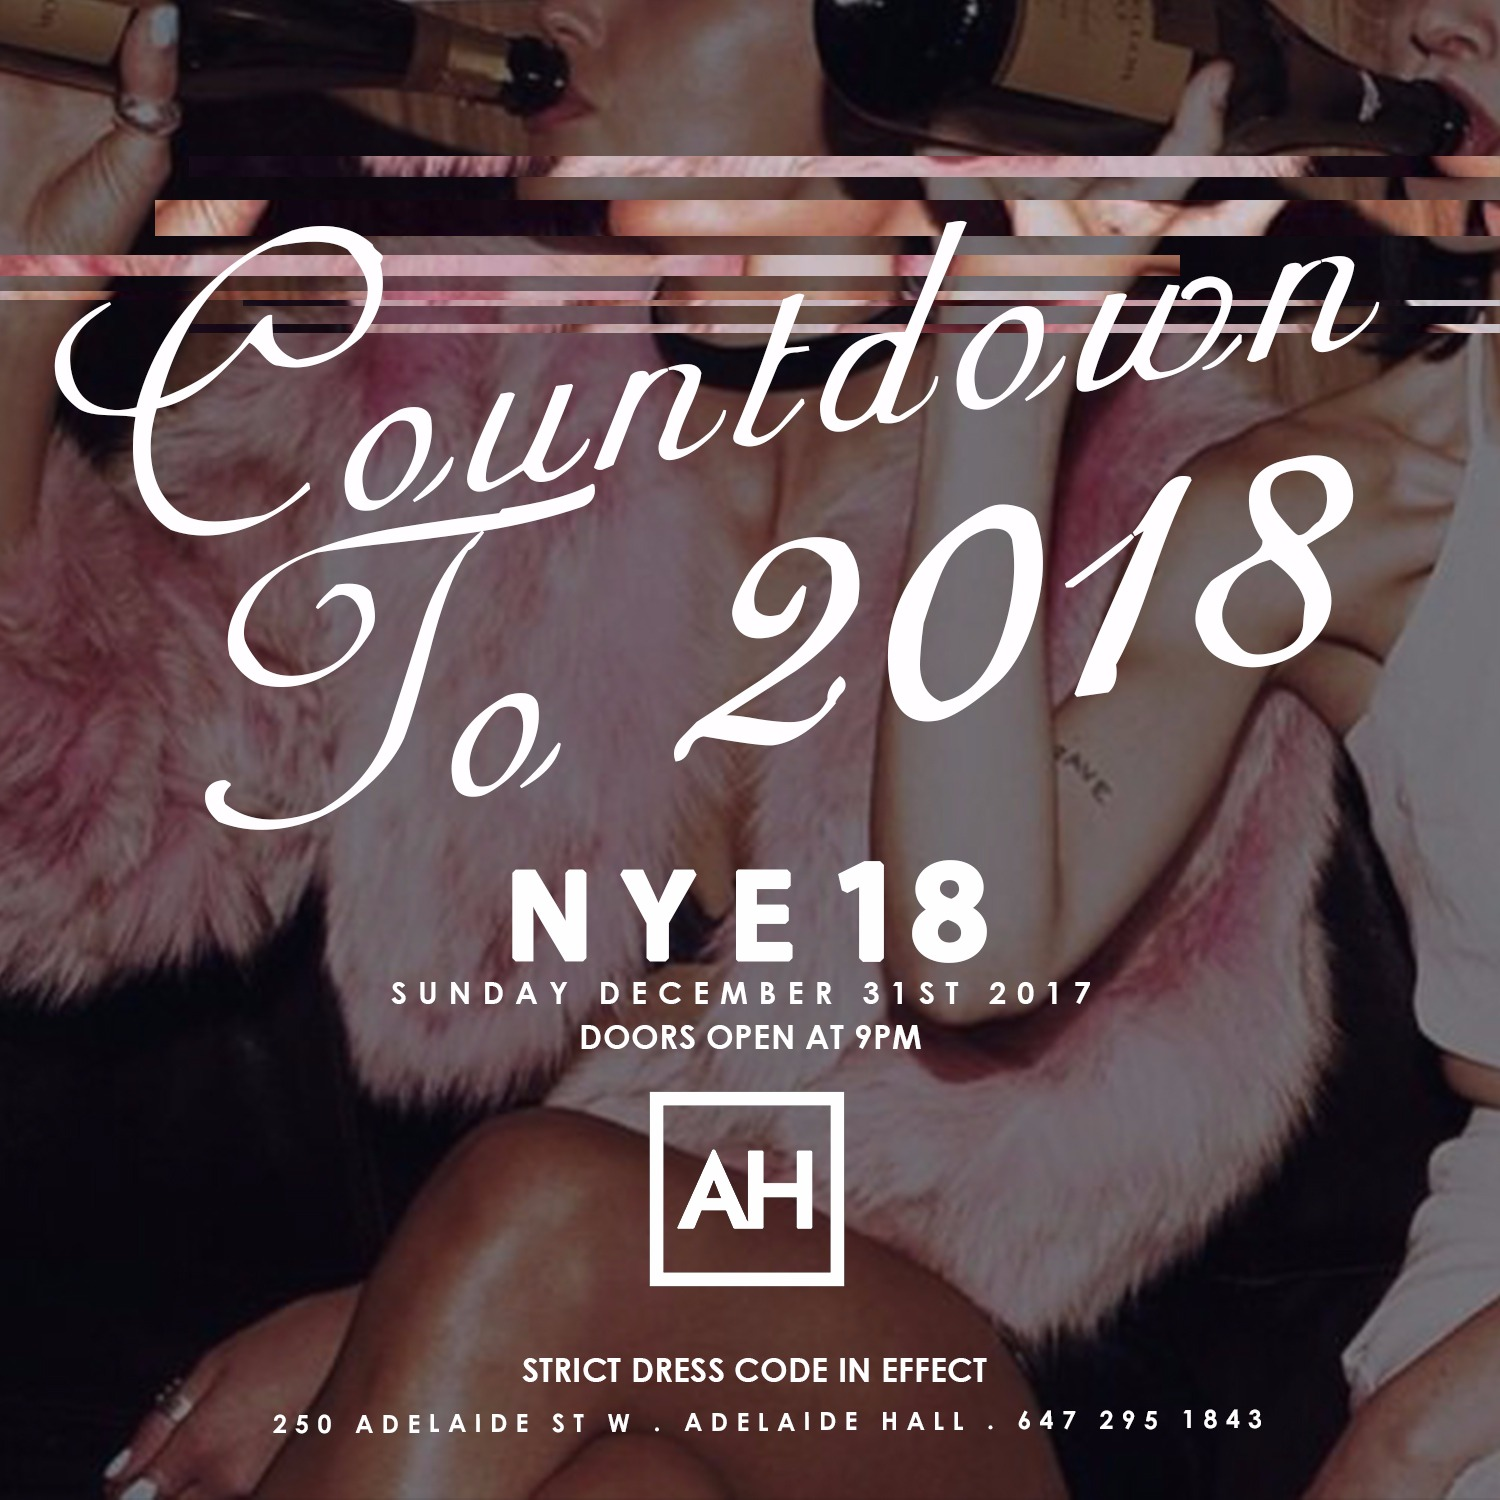 Countdown to 2018 NYE @ Adelaide Hall // Sun Dec 31st